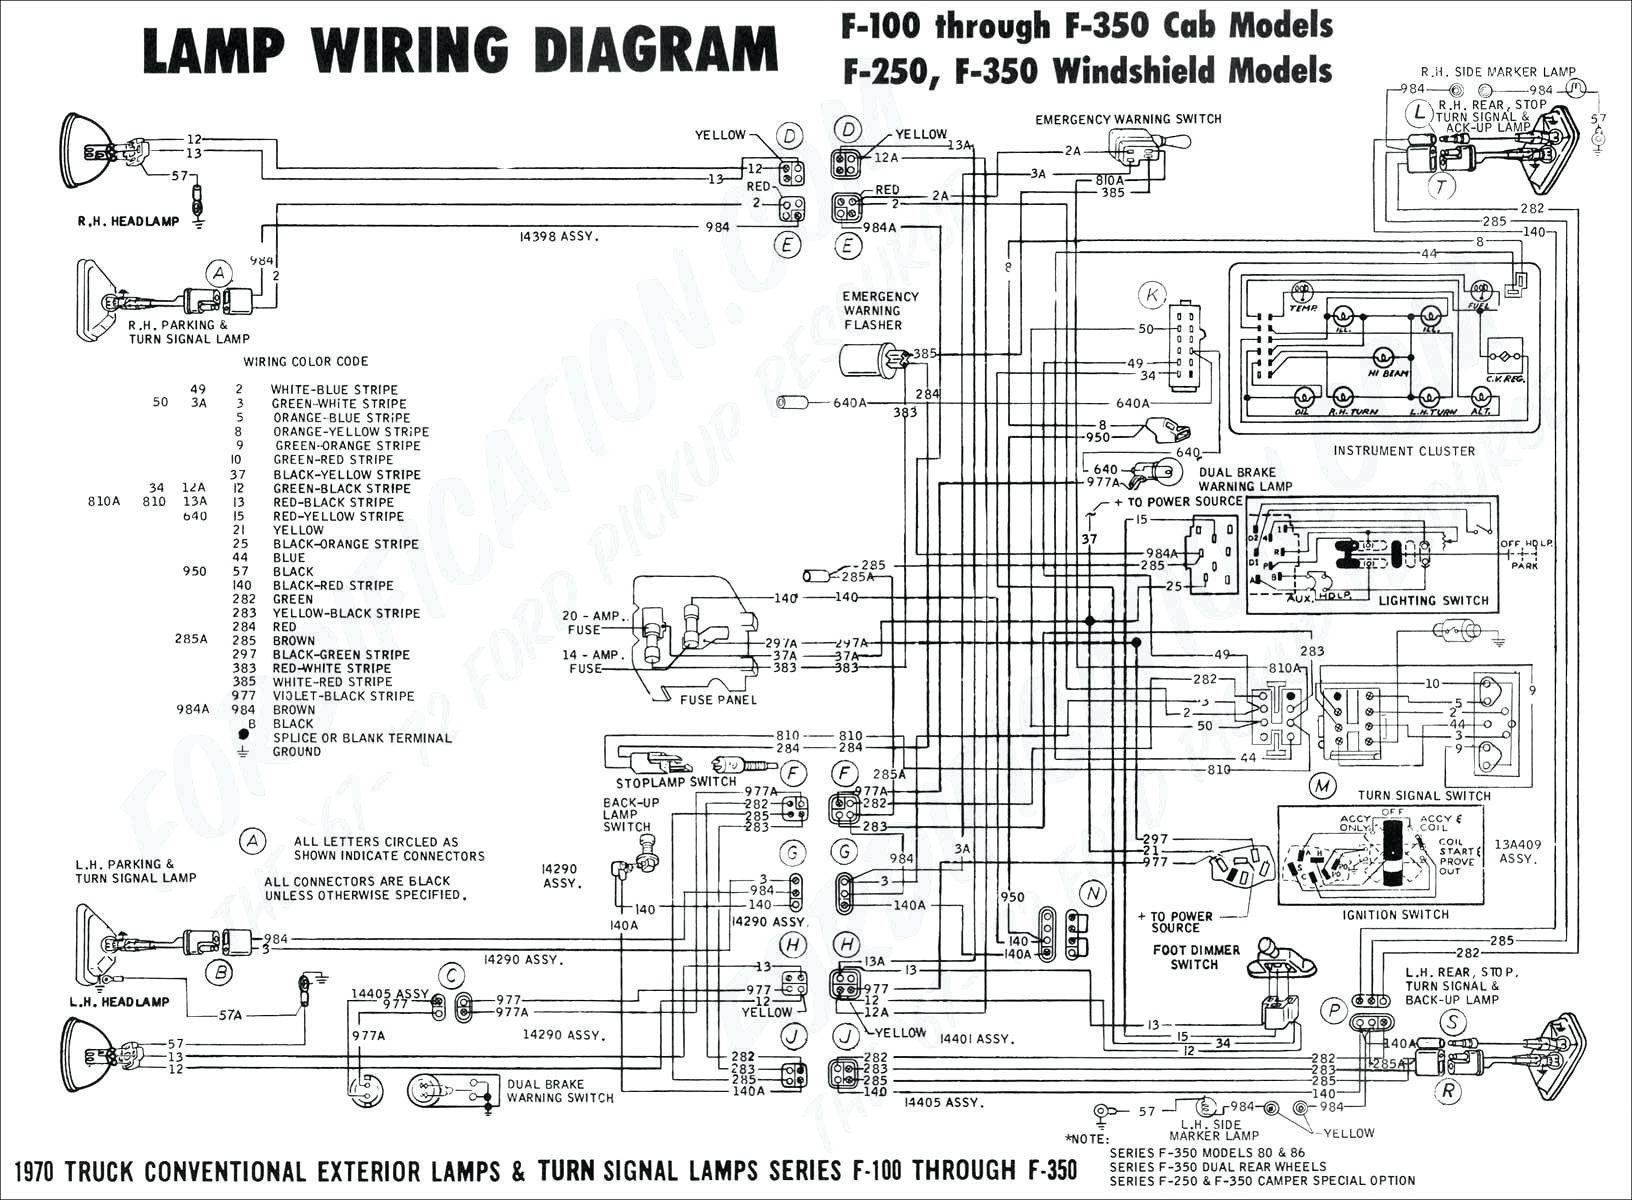 06 Dodge Ram Tail Light Wiring Diagram - Wiring Diagrams List on